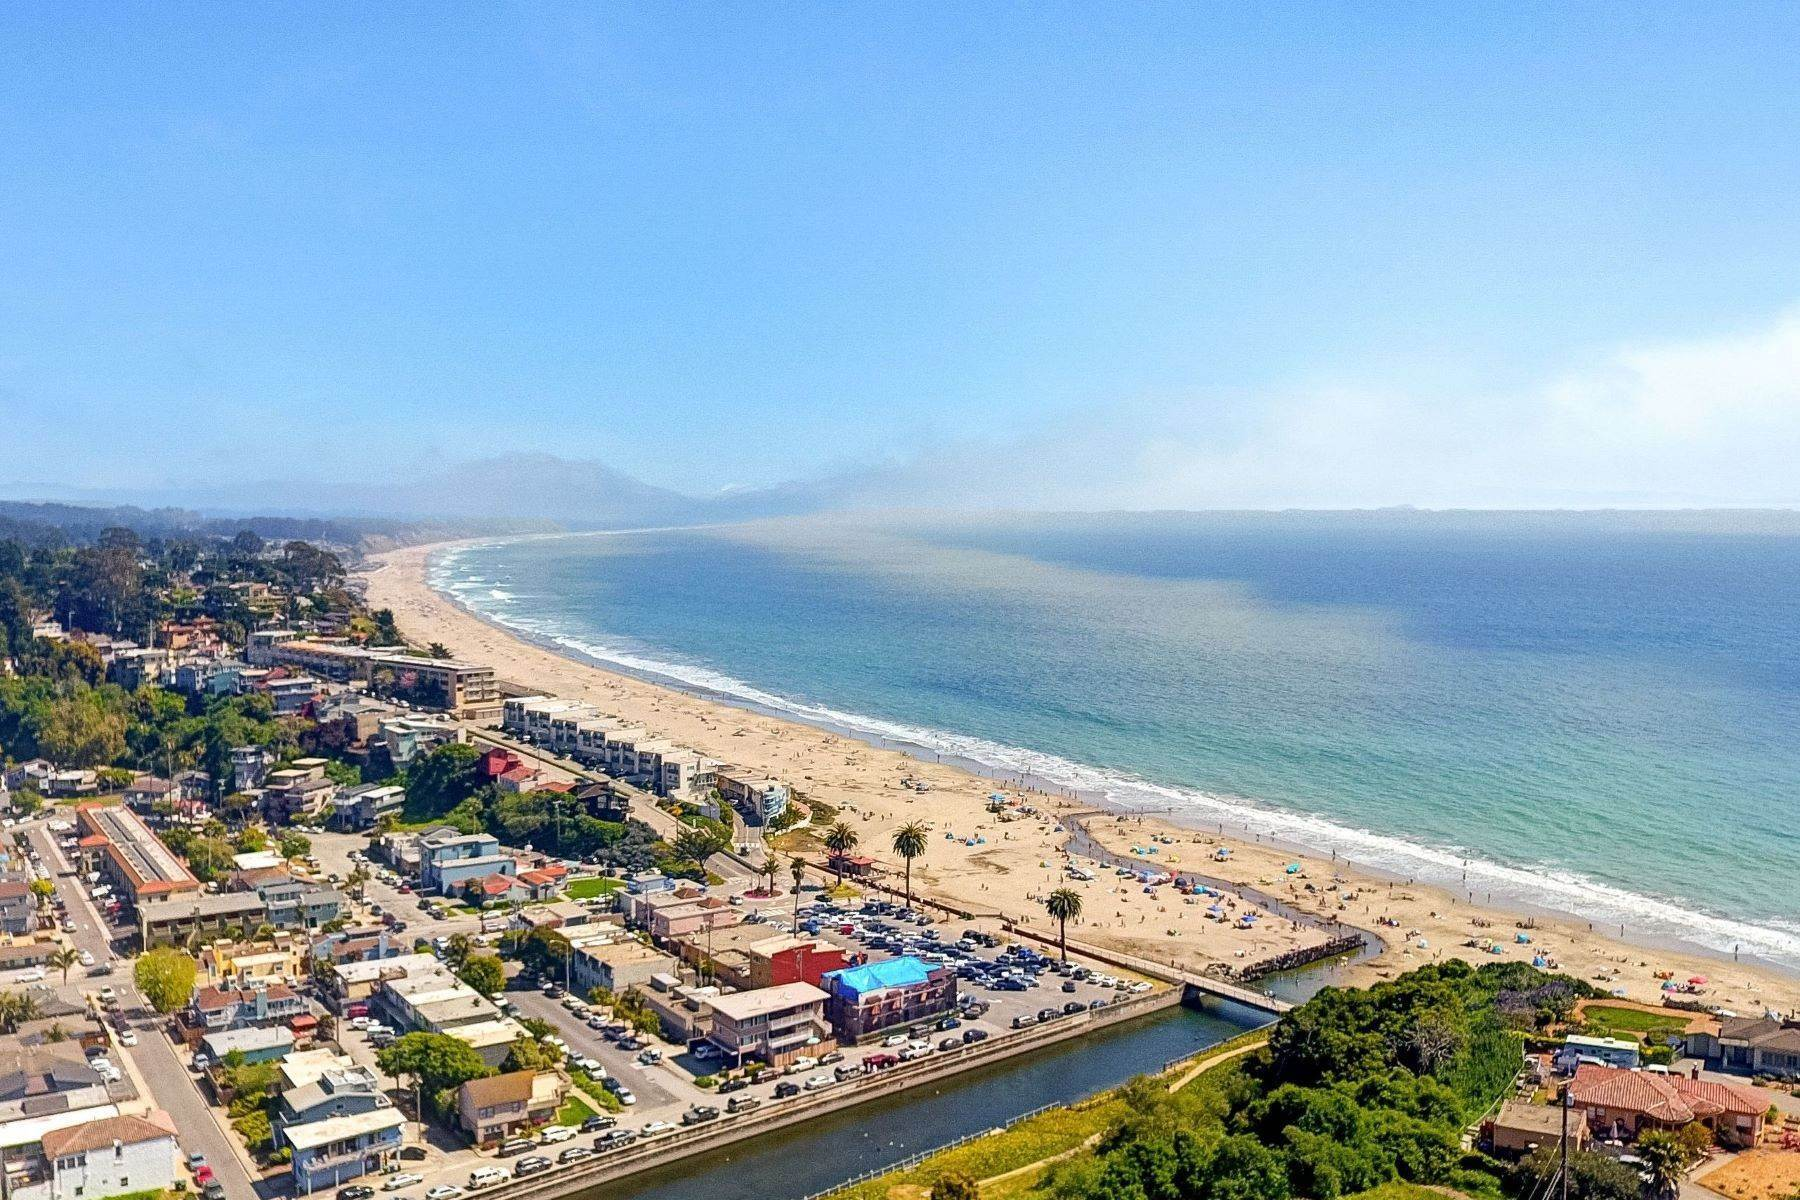 Single Family Homes for Sale at Forever Beach and Monterey Bay Views 159 Seacliff Dr Aptos, California 95003 United States